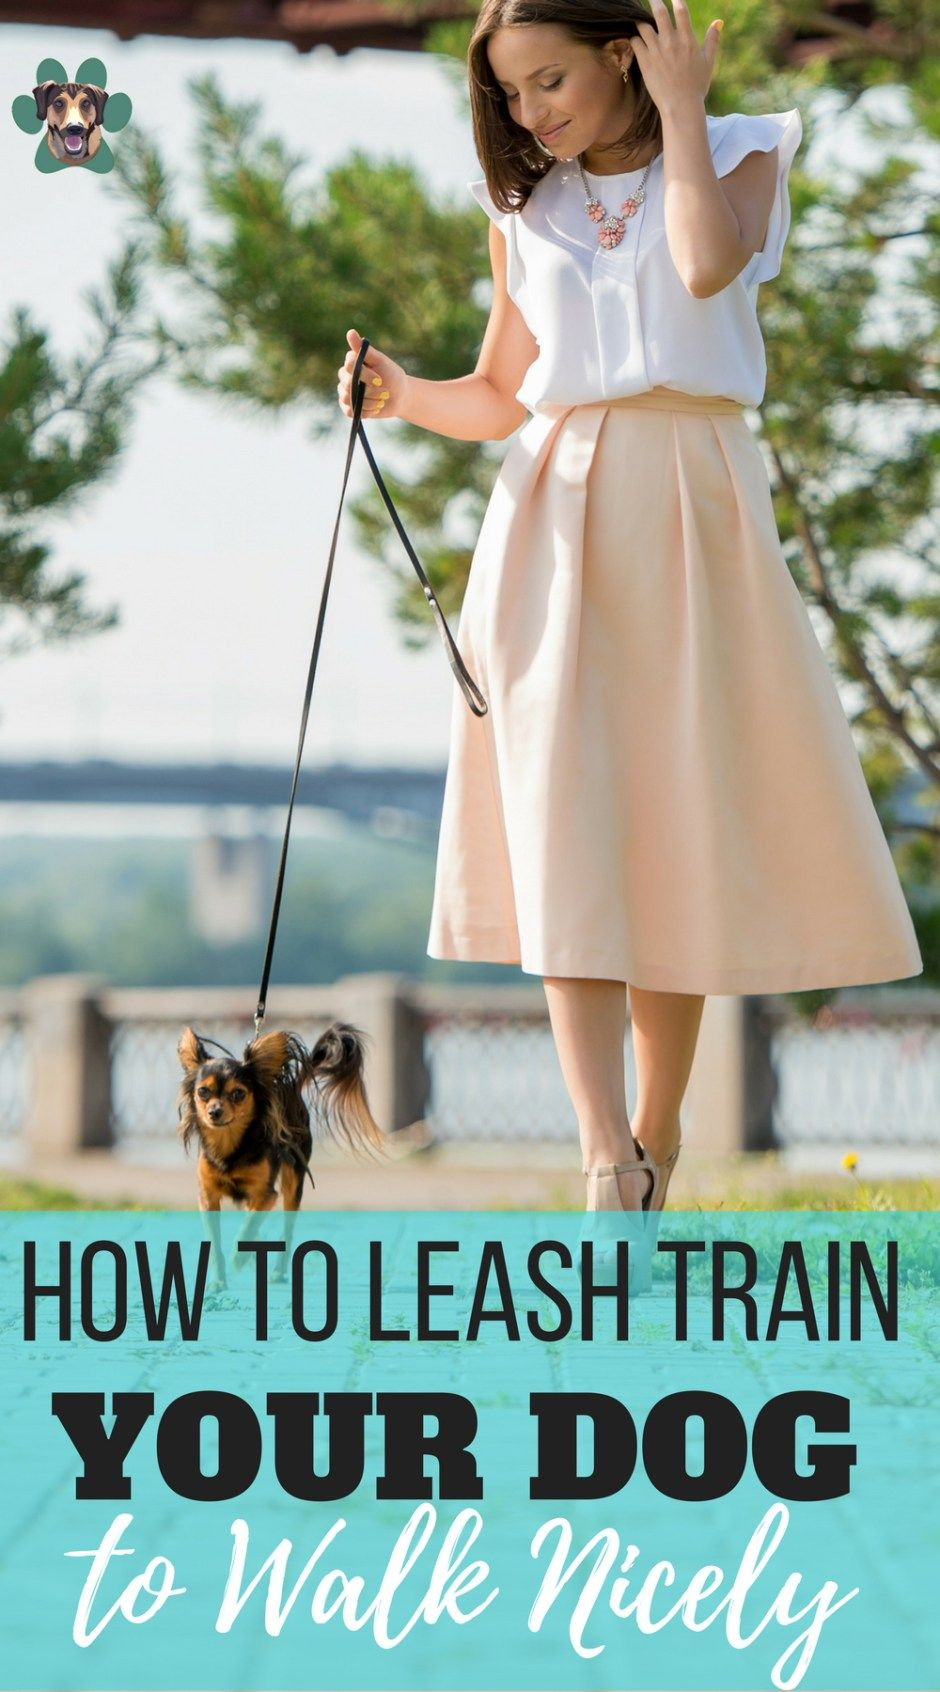 How To Train A Dog To Heel And Walk Nicely On A Leash Training